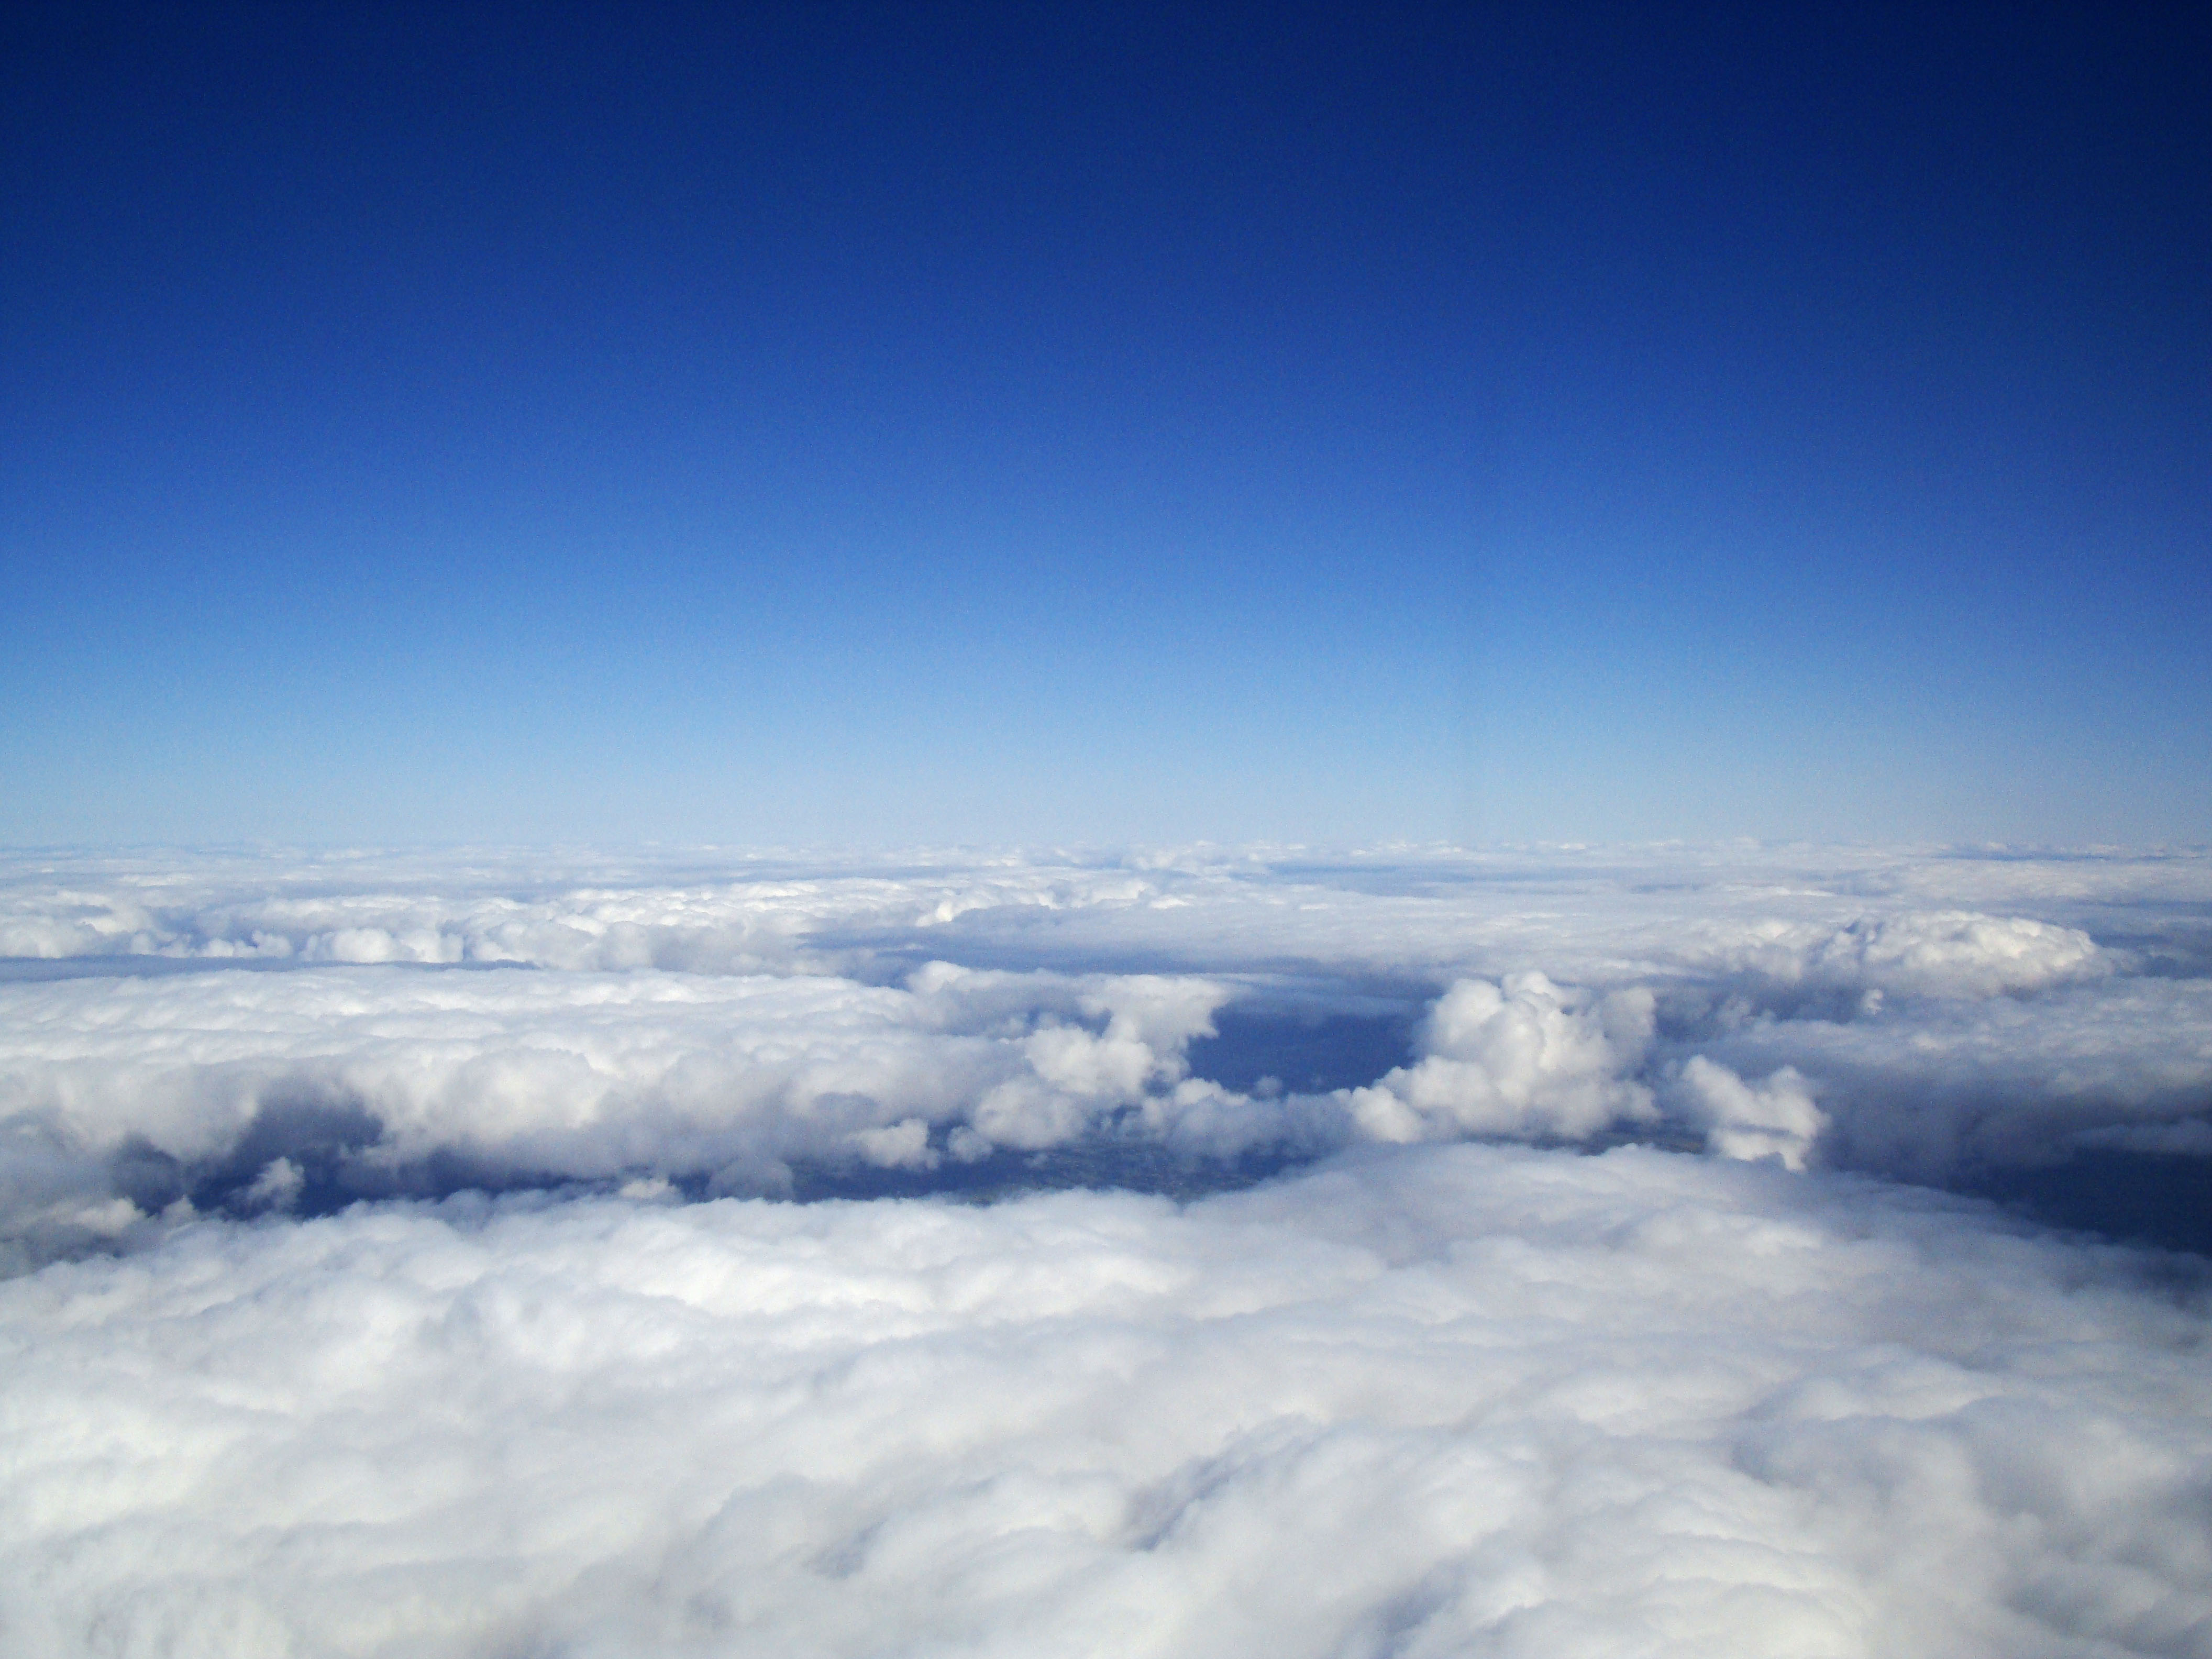 Textures Clouds Formations Sky Storms Weather Phenomena Aerial Views 02